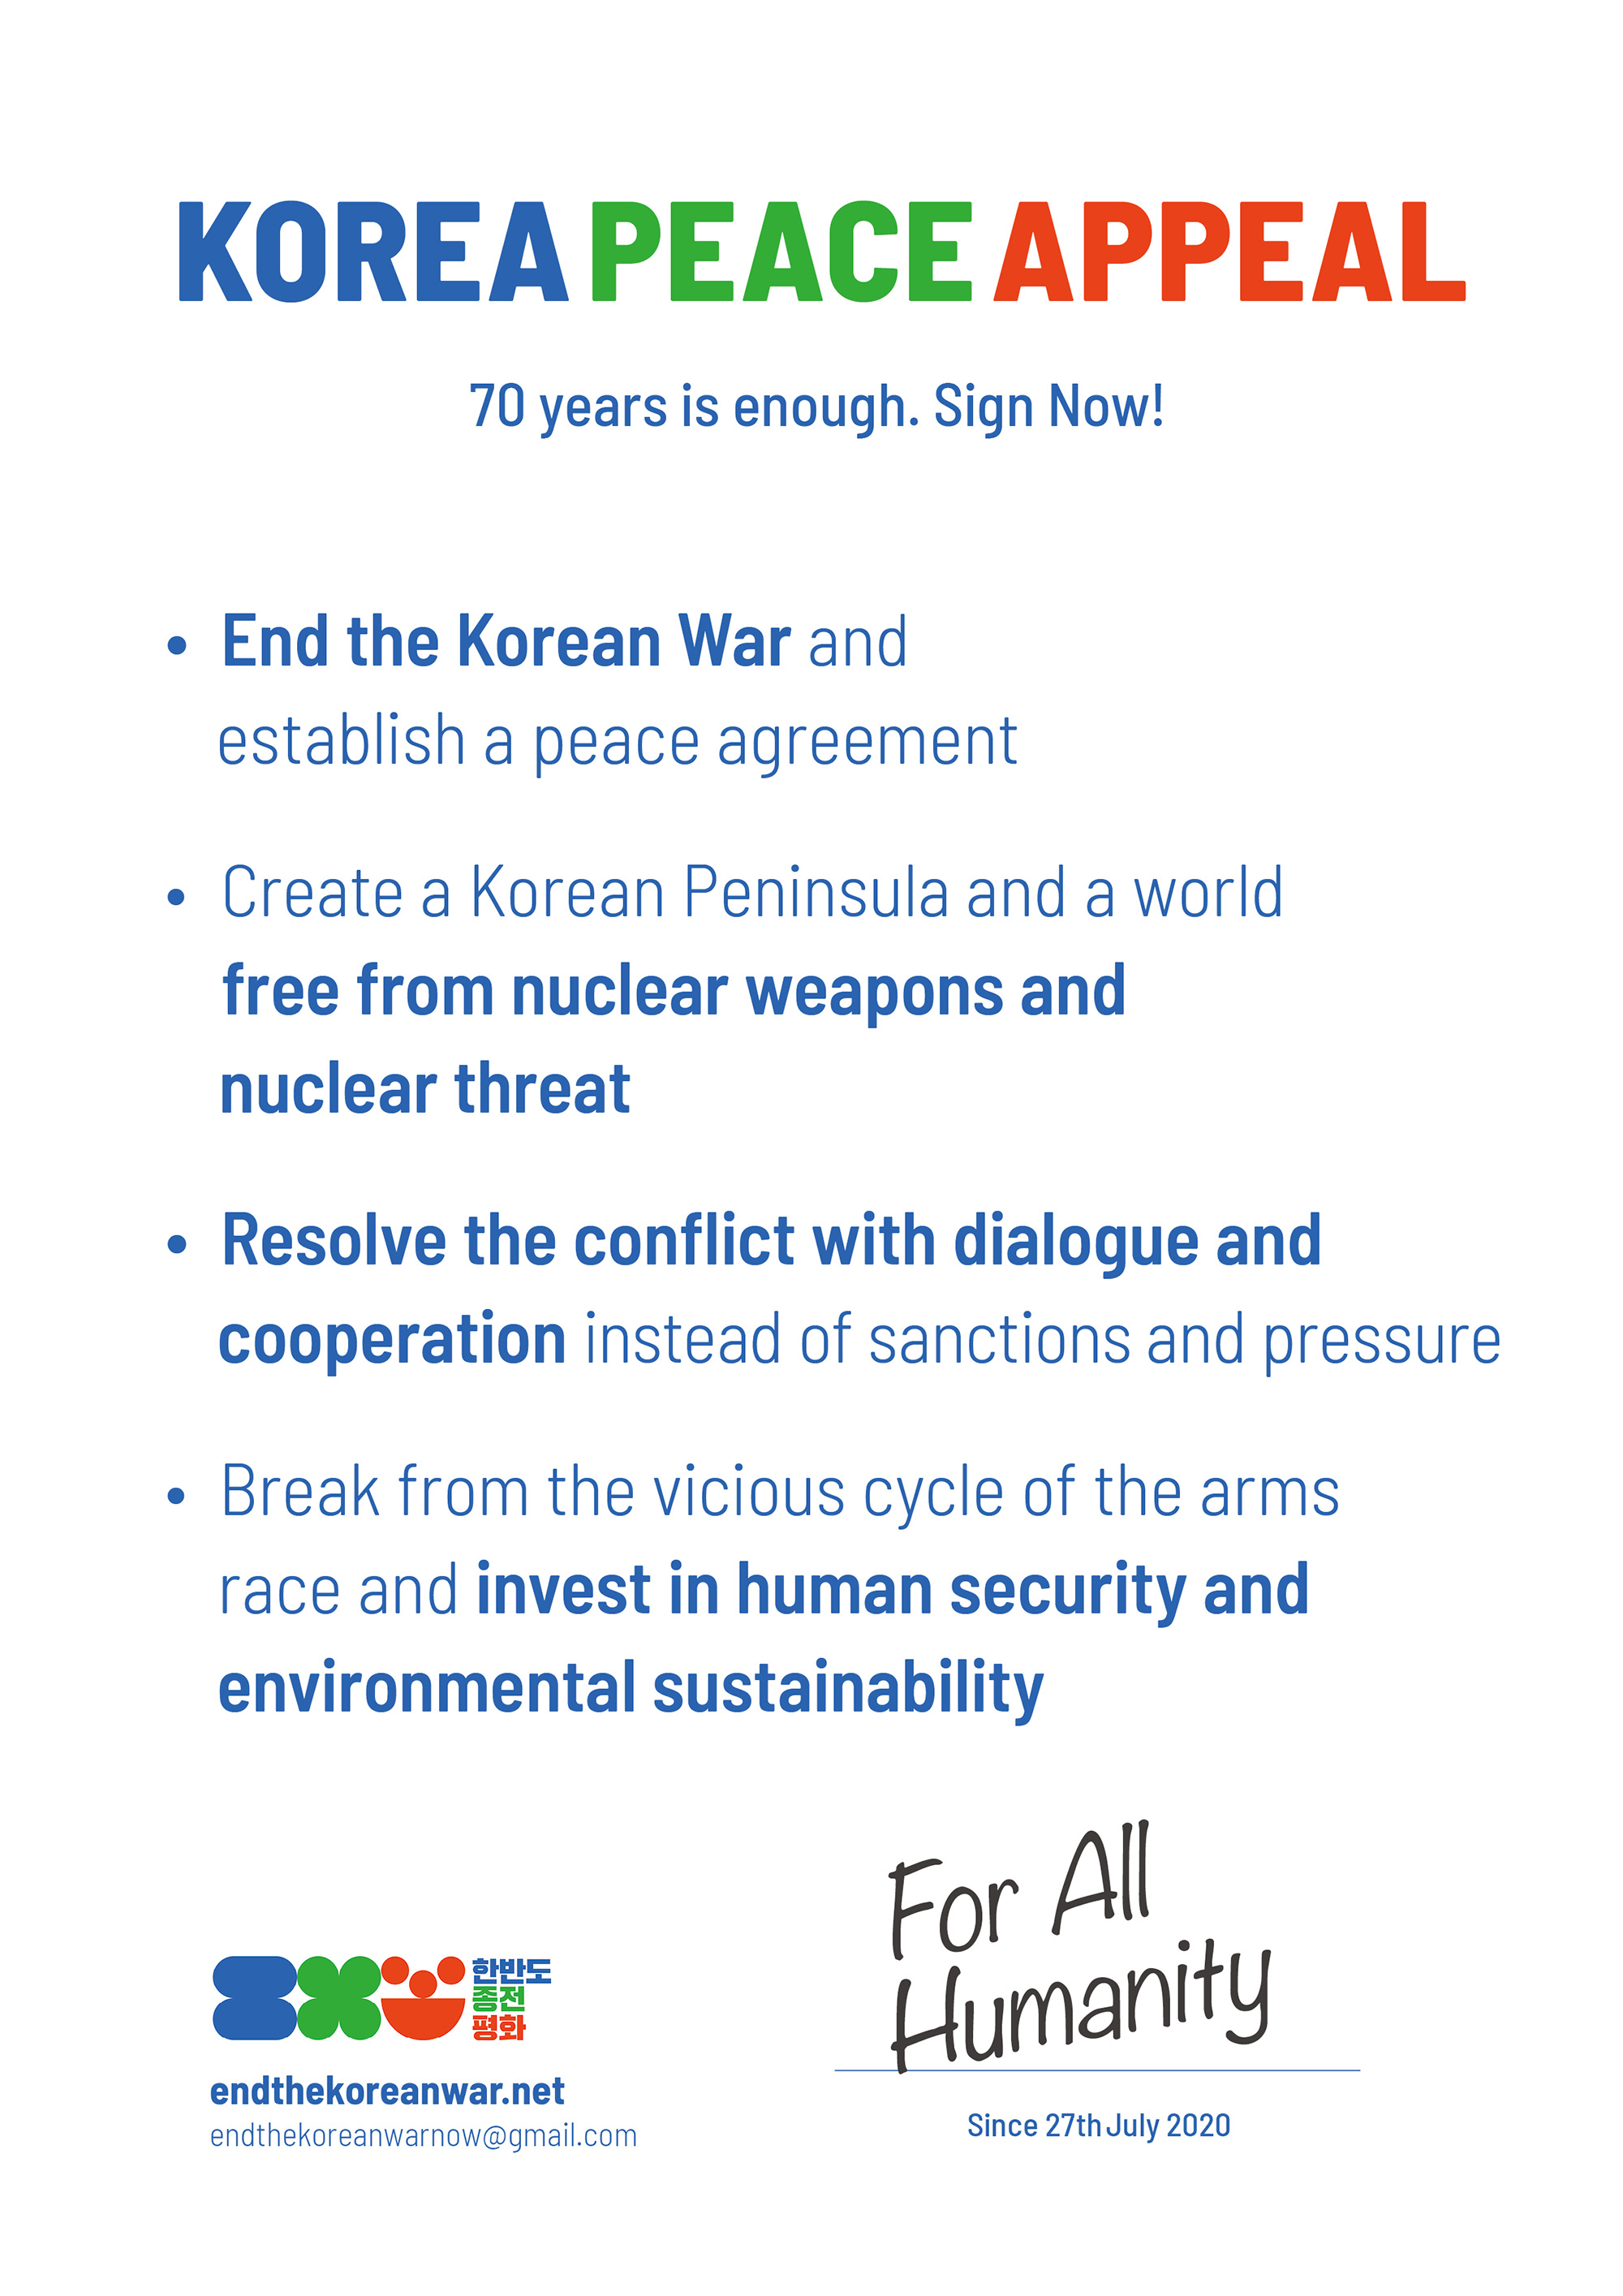 Korea Peace Appeal